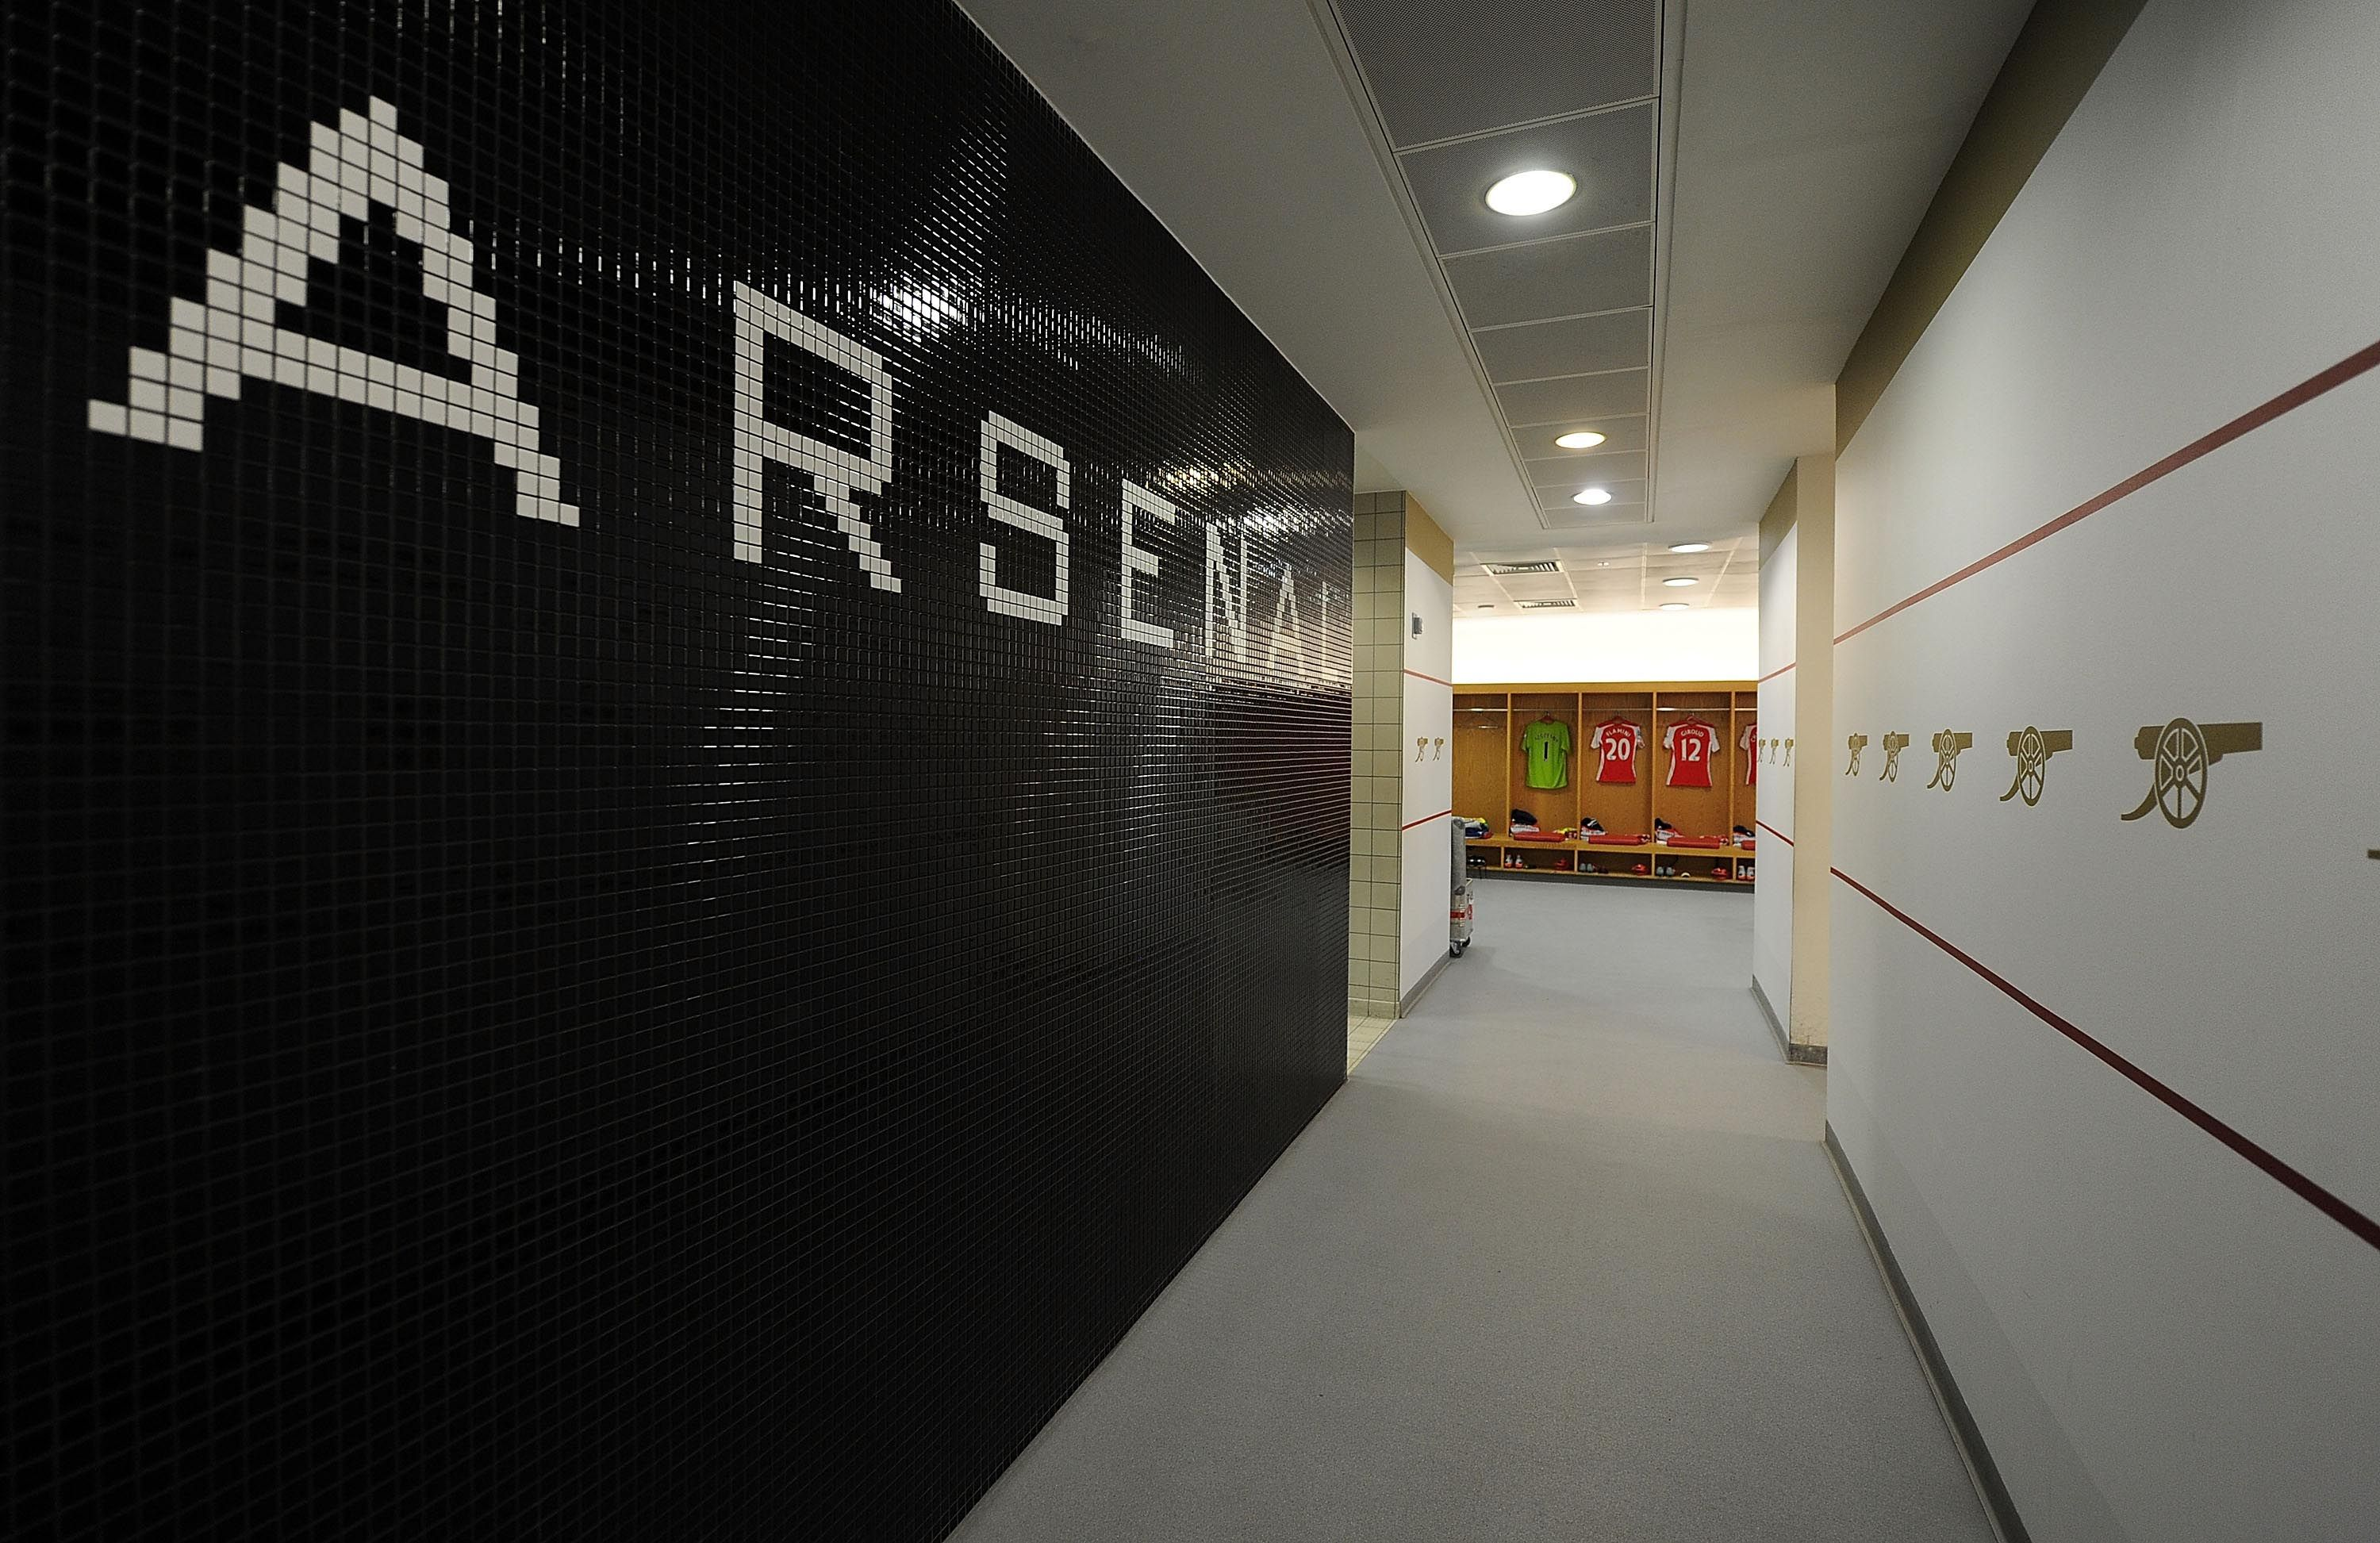 Looking Around Arsenal S Emirates Stadium Walking Into The Home Dressing Room